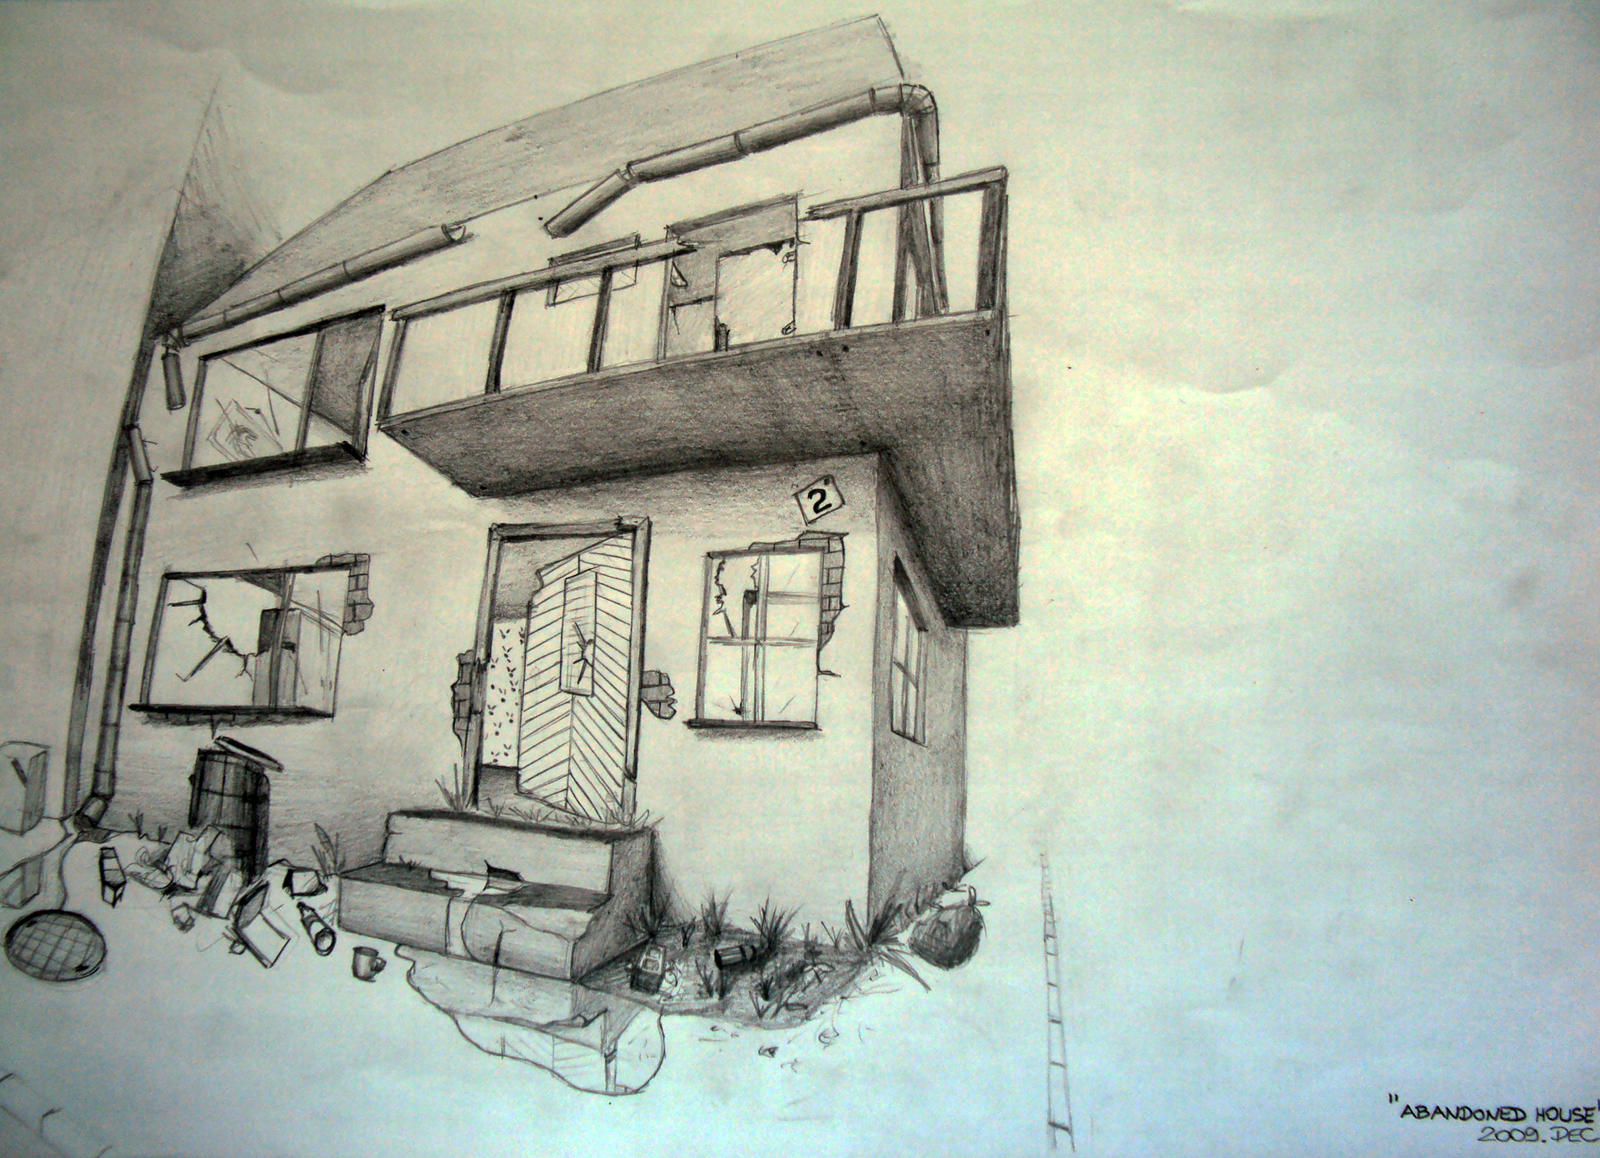 It's just a photo of Punchy Abandoned House Drawing